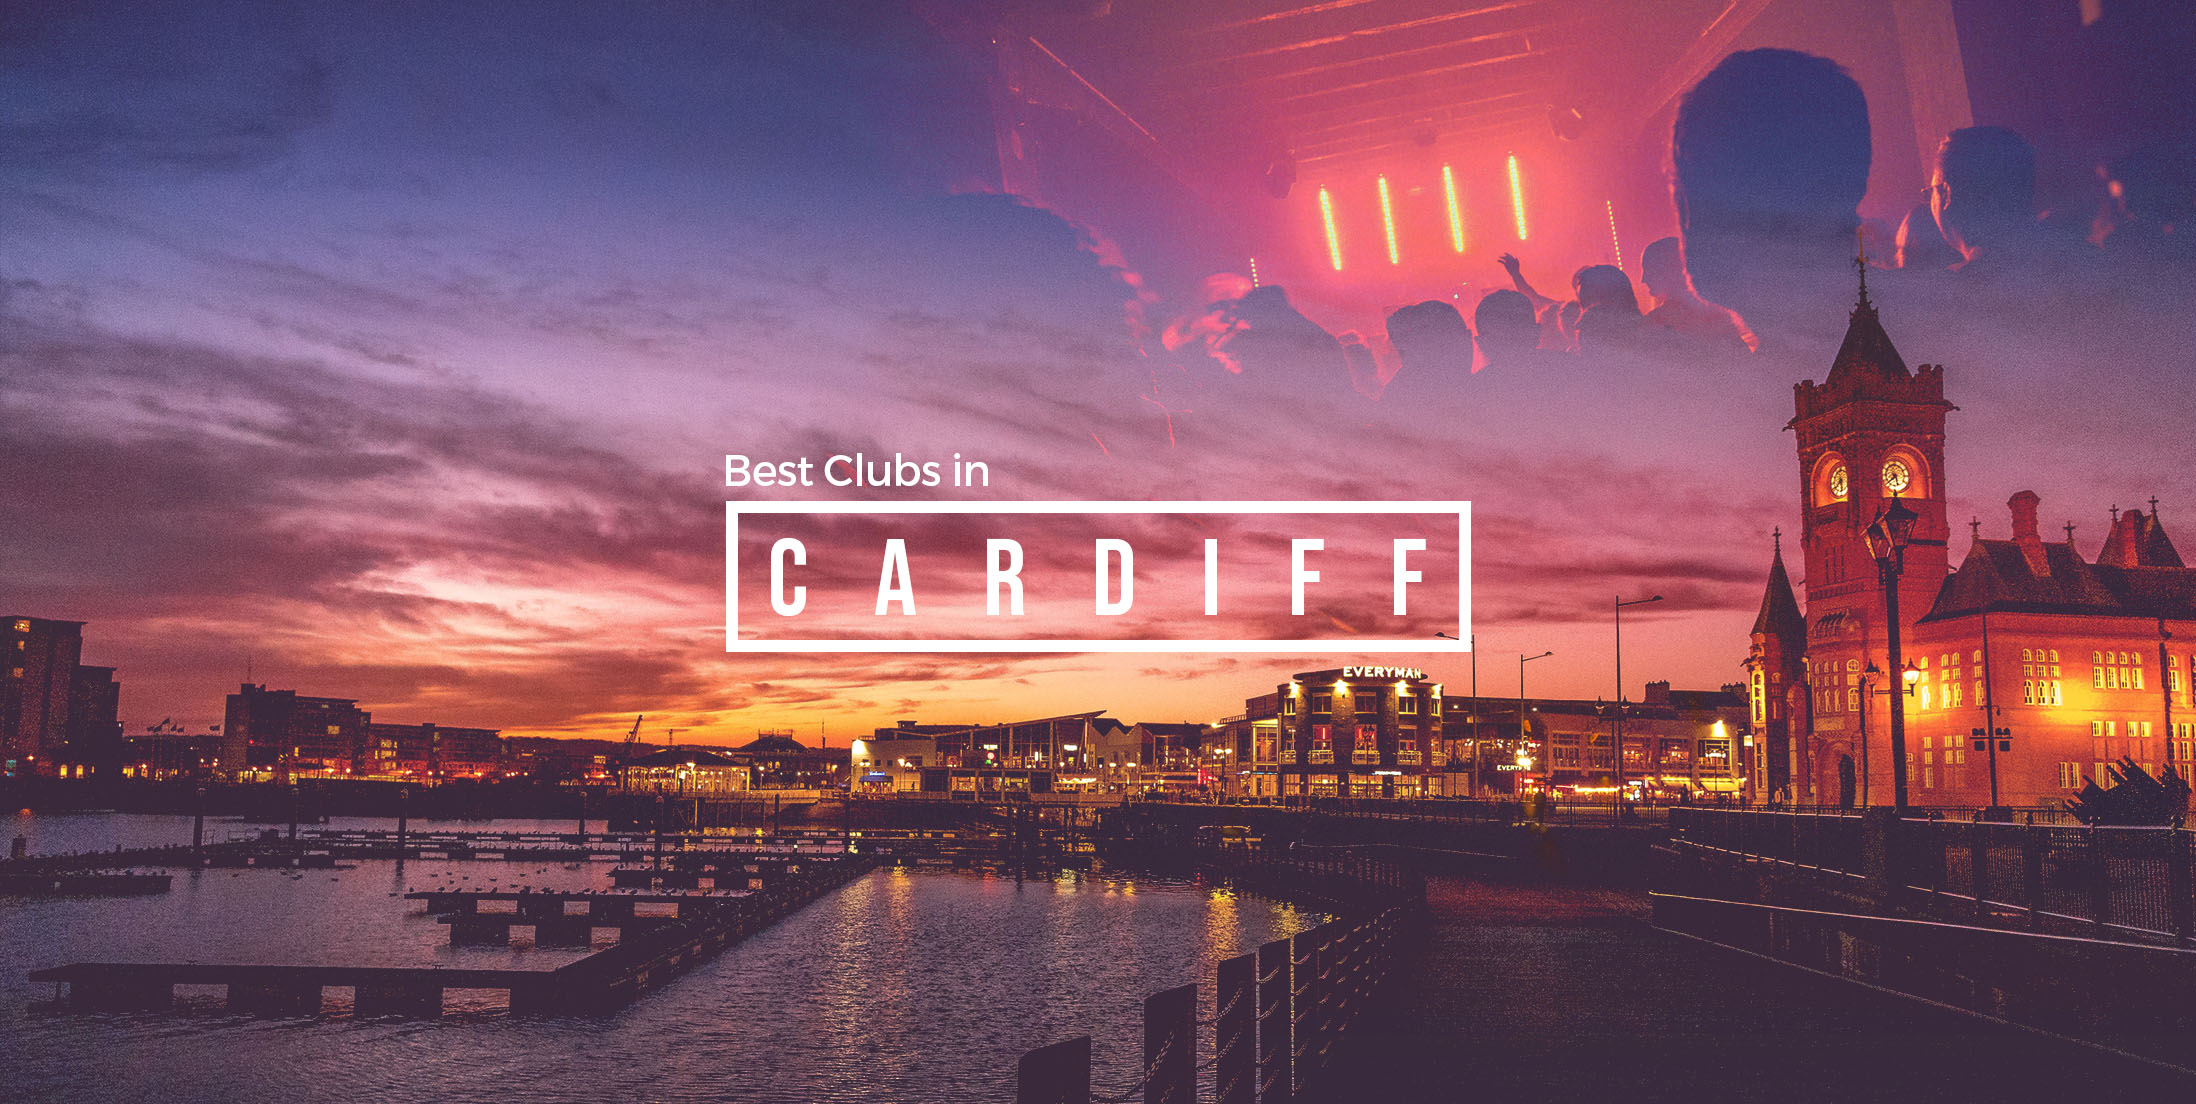 Best Clubs in Cardiff